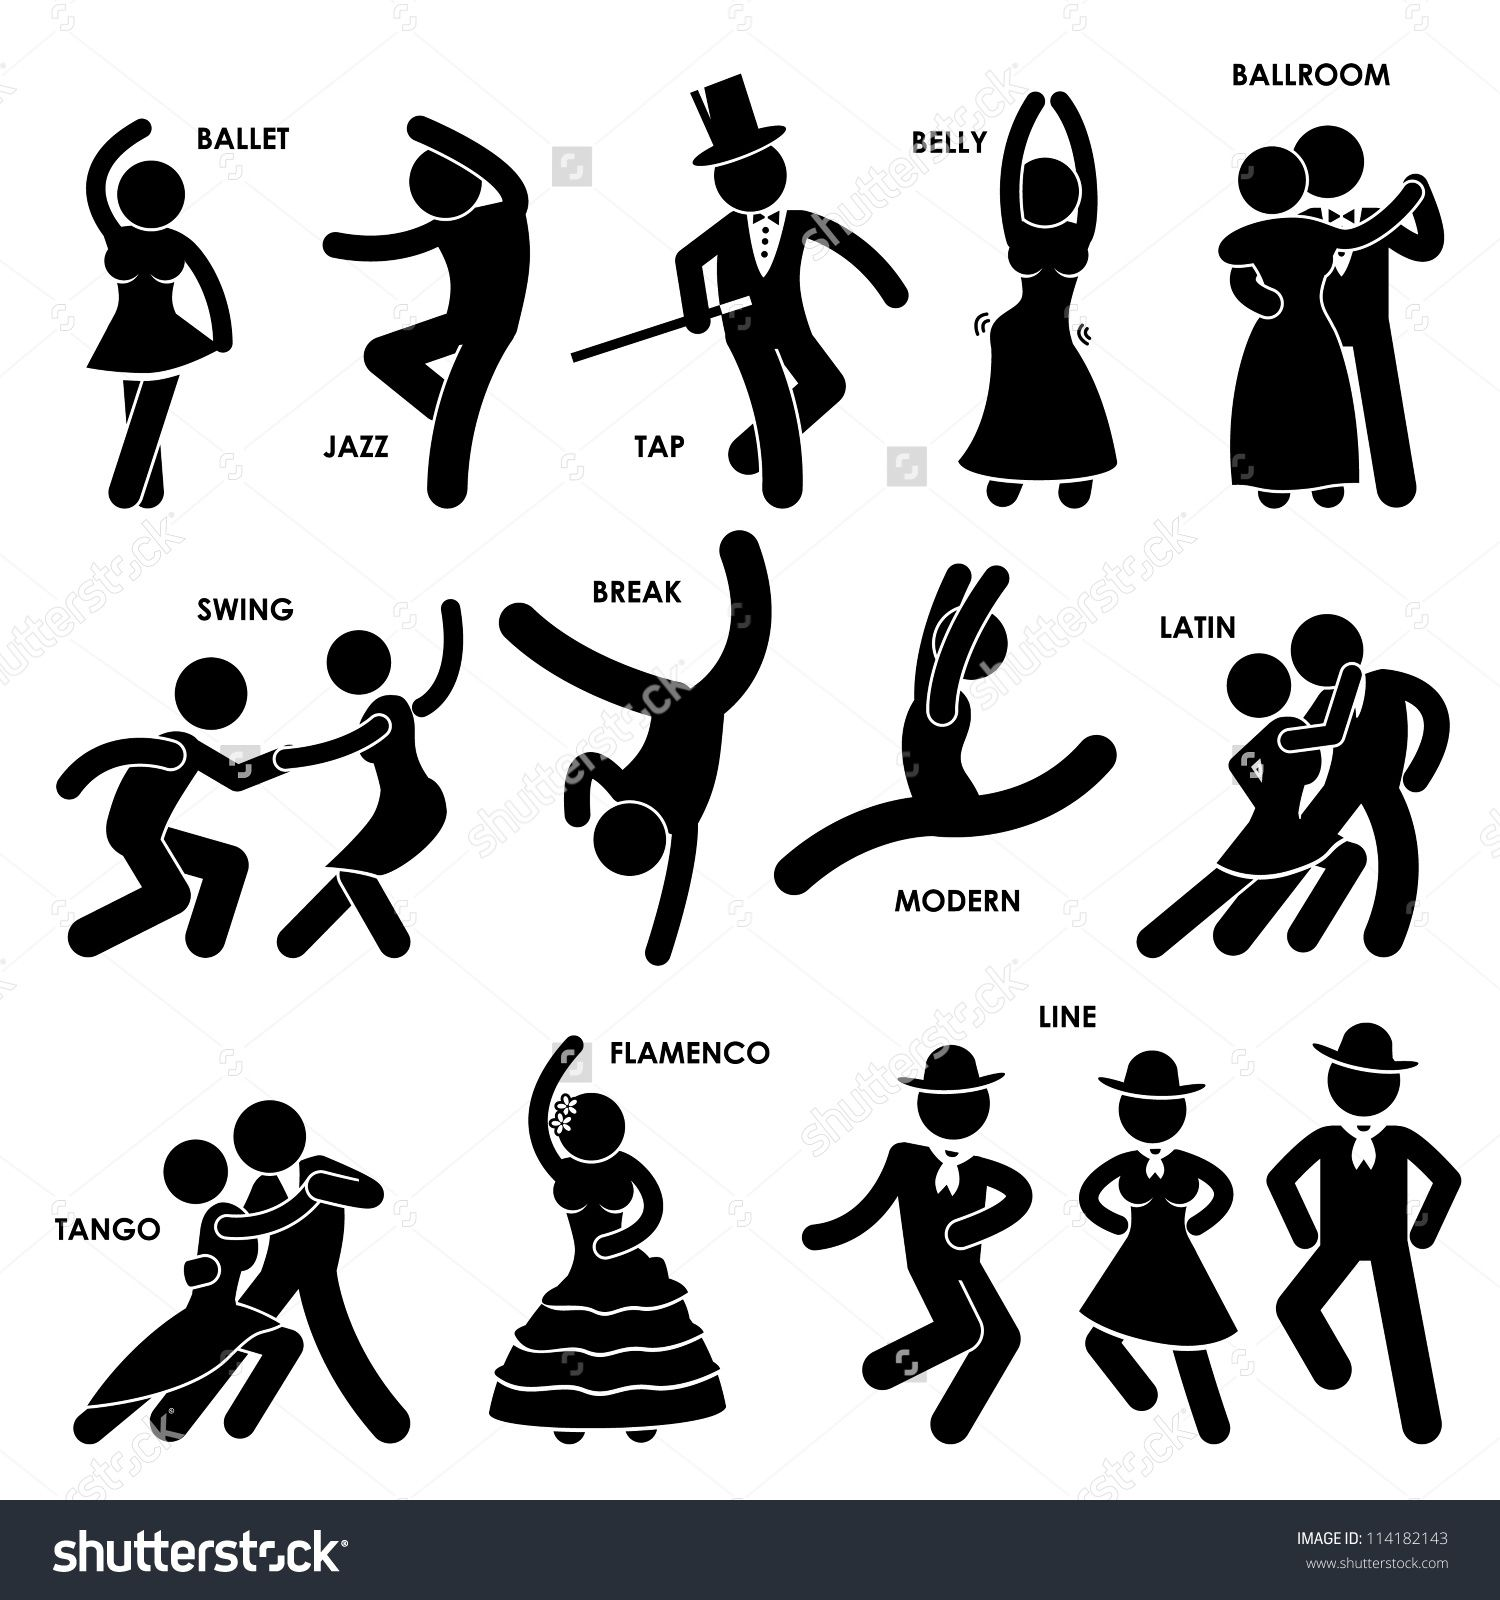 Clipart dance dance style. Moves staying fit dancing